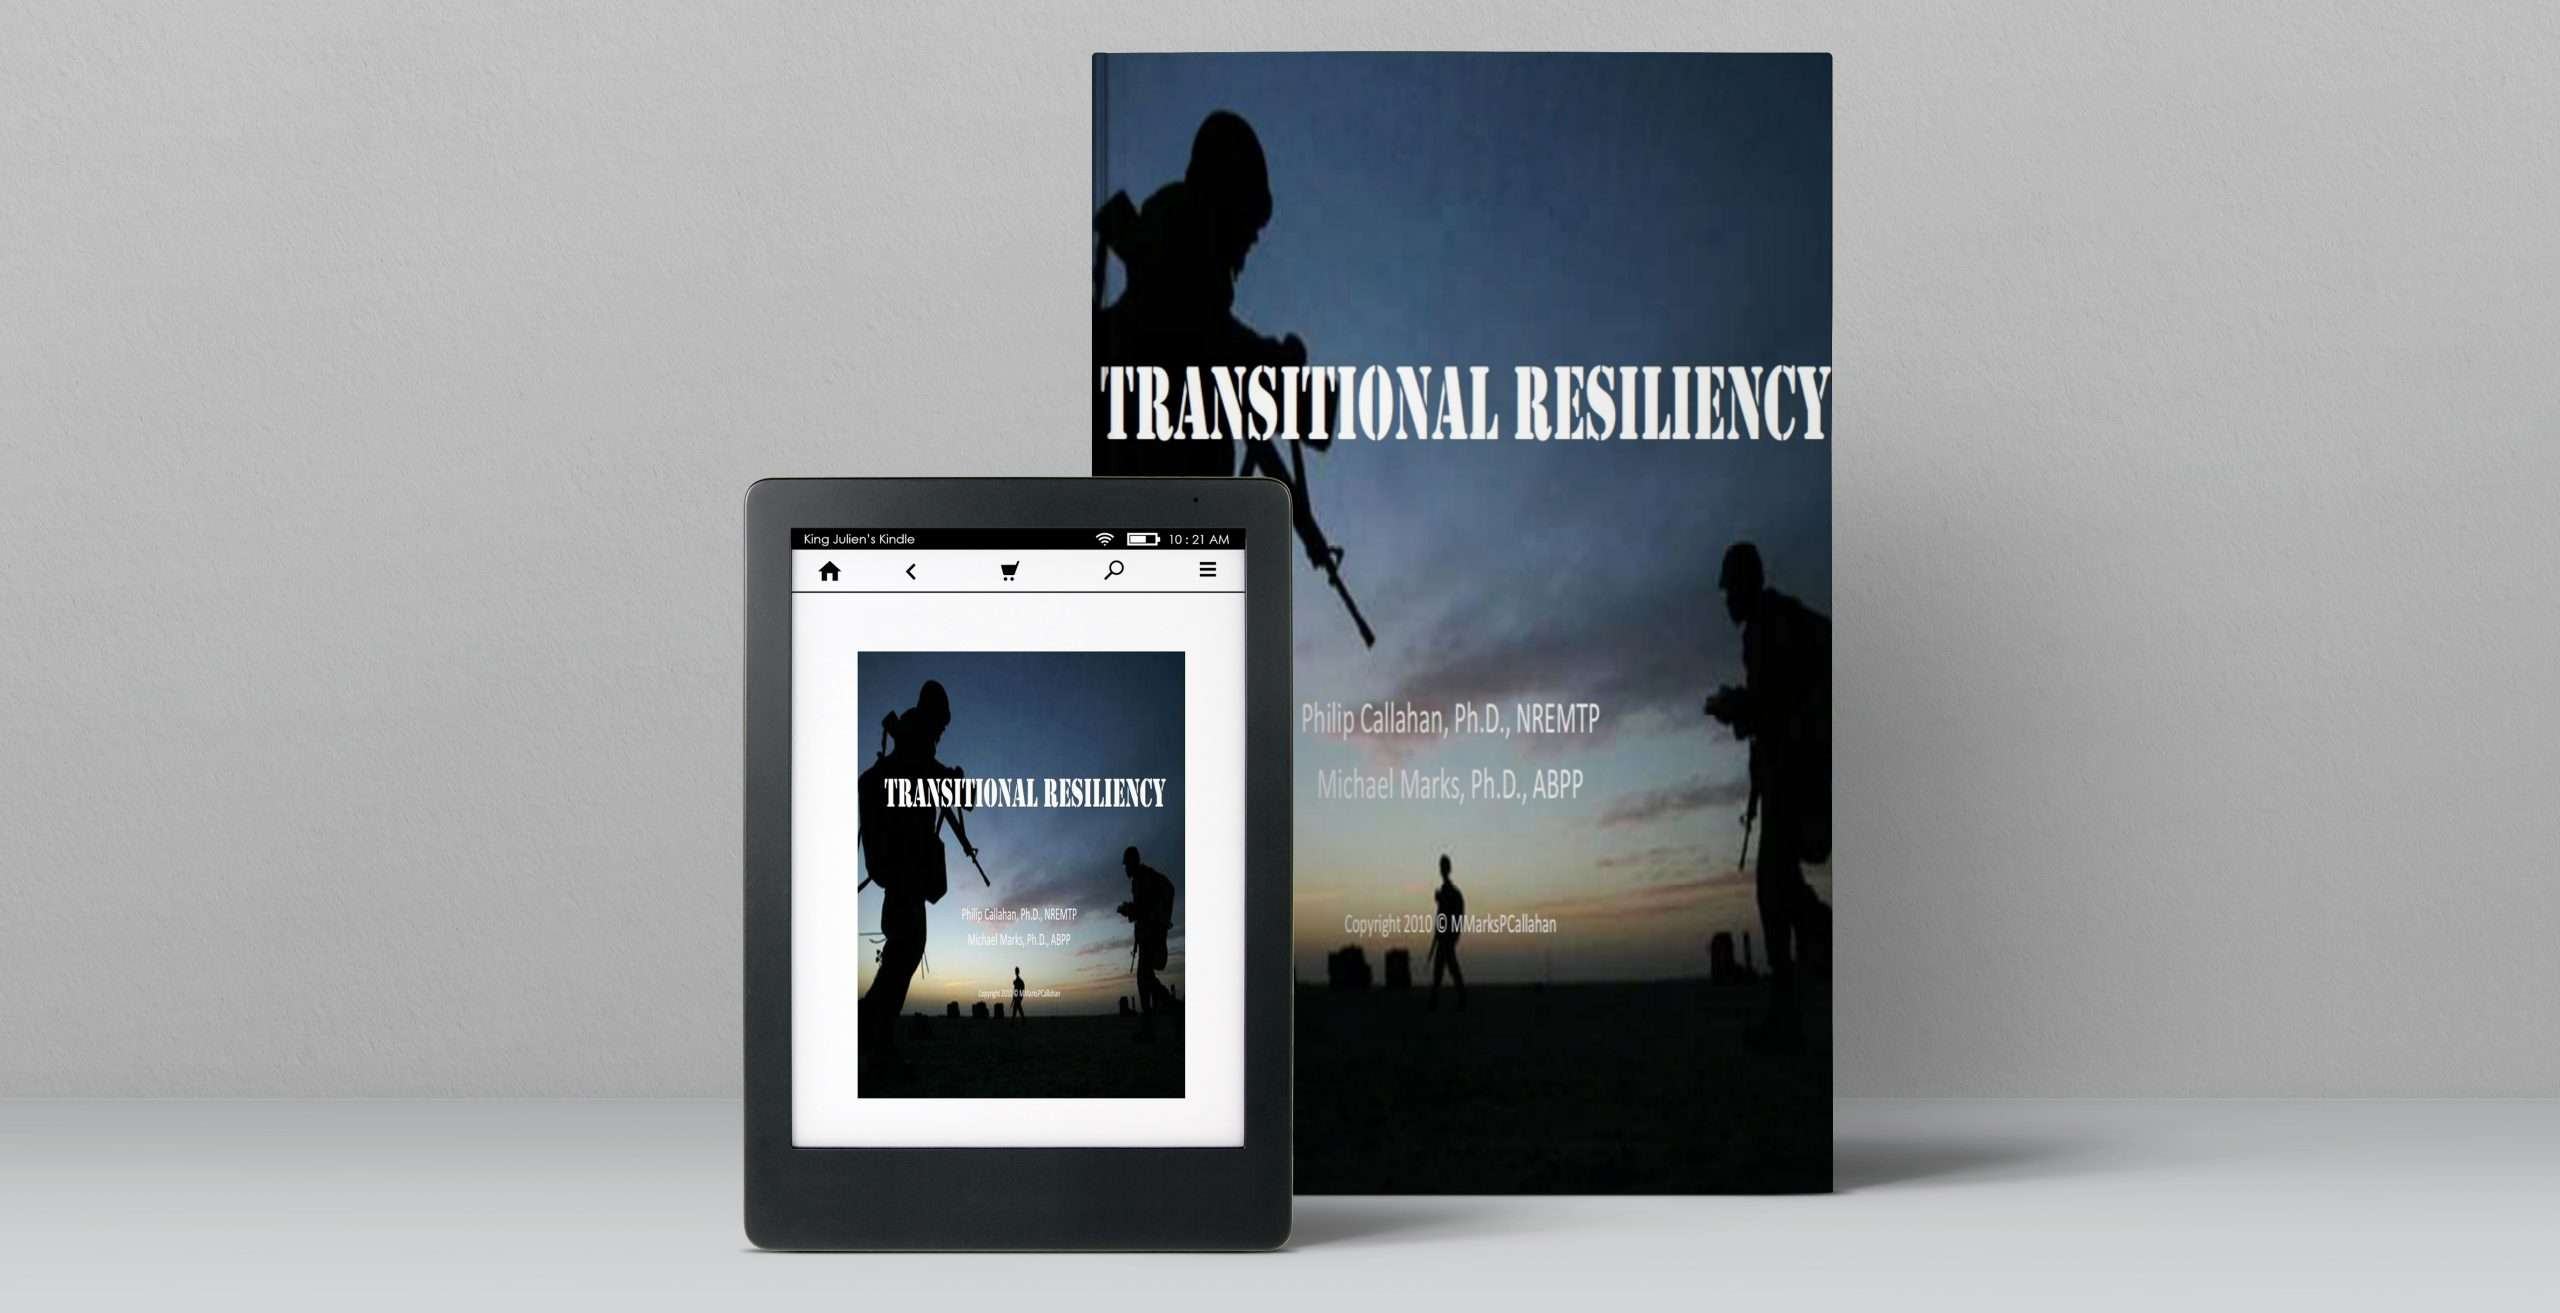 TransitionalResiliency